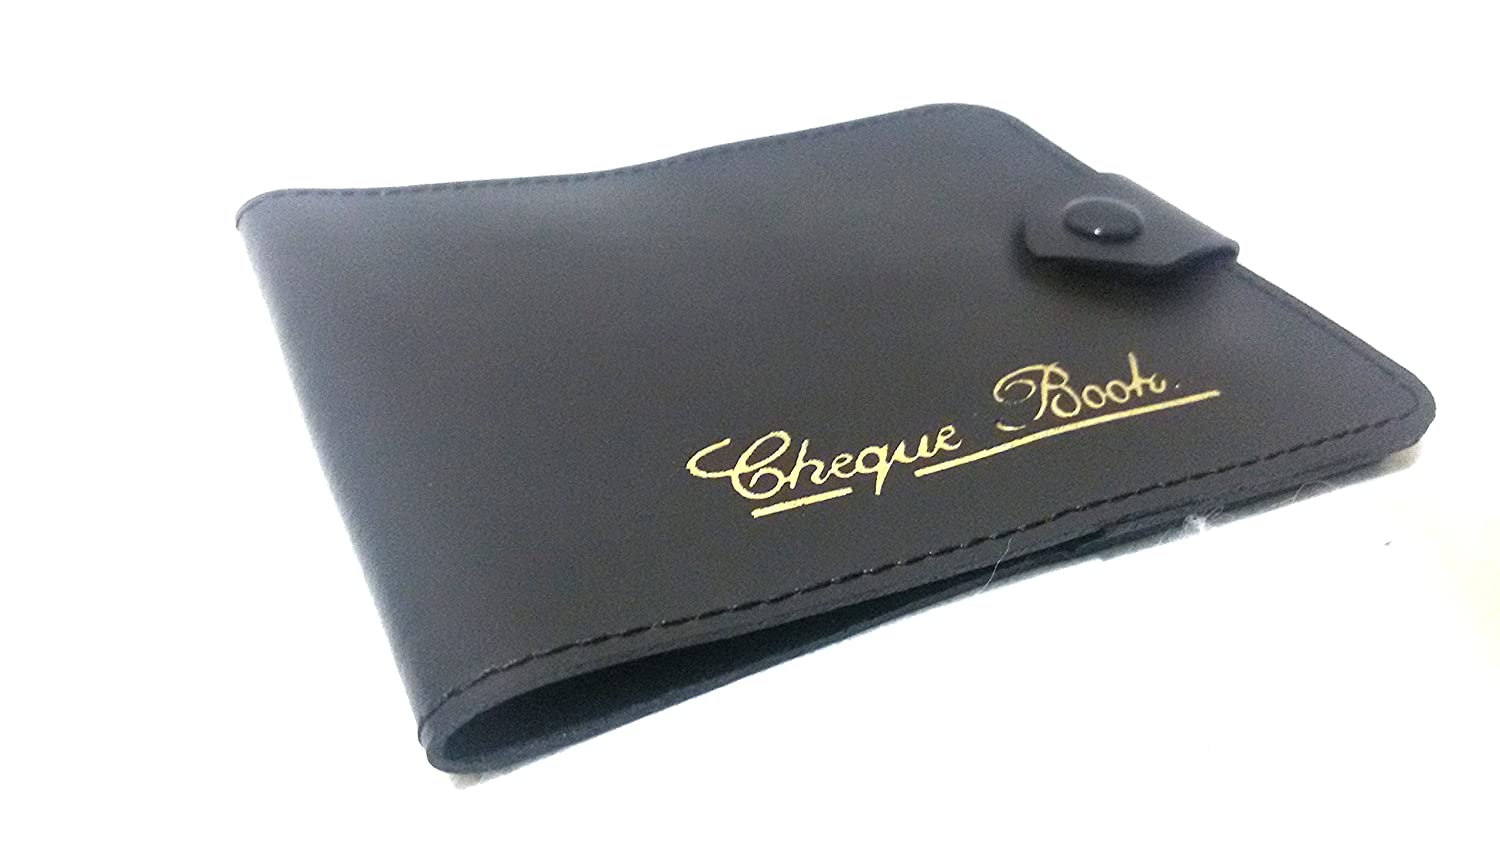 AKSHIDE Black Bonded Leather Style Cheque Book Holder /Leather Style Cheque Book Cover